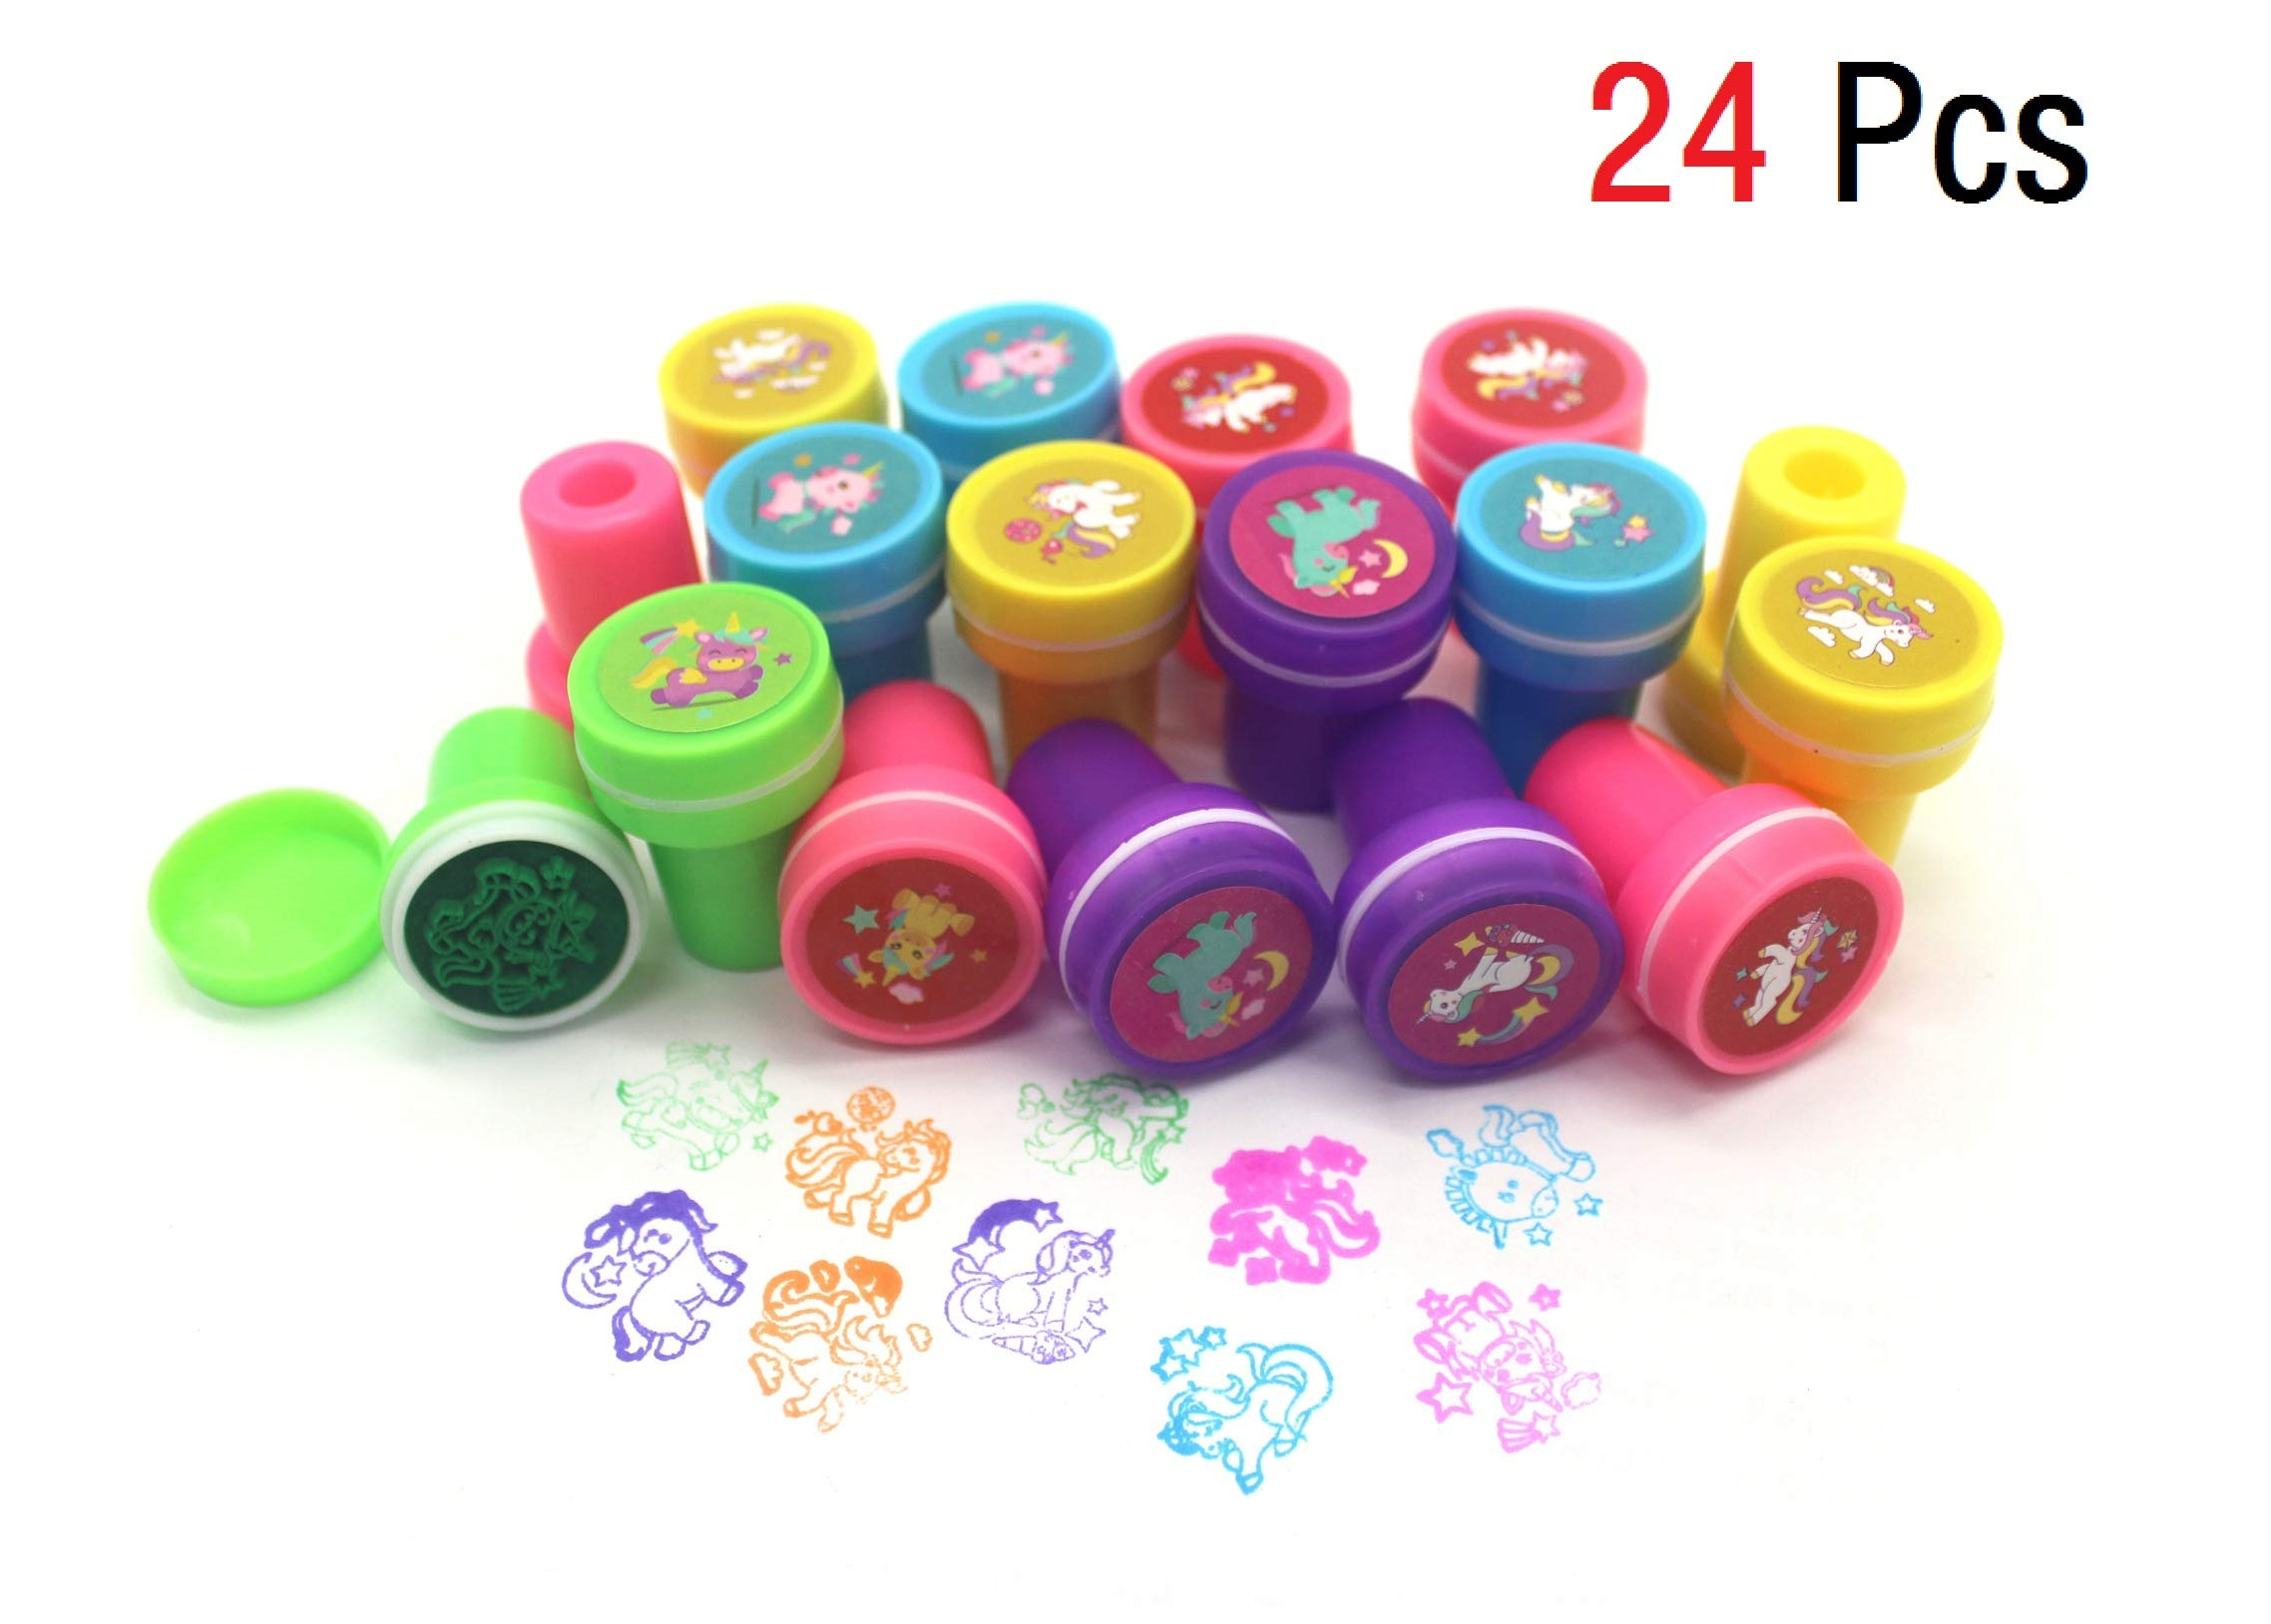 Klmars AB-112 Unicorn Theme Party Favor for Kids-96Pcs Tatoo-24Pcs Stamper-27 Pcs Rings Necklace Keychain-Birthday Party Supplies, Colorful 4